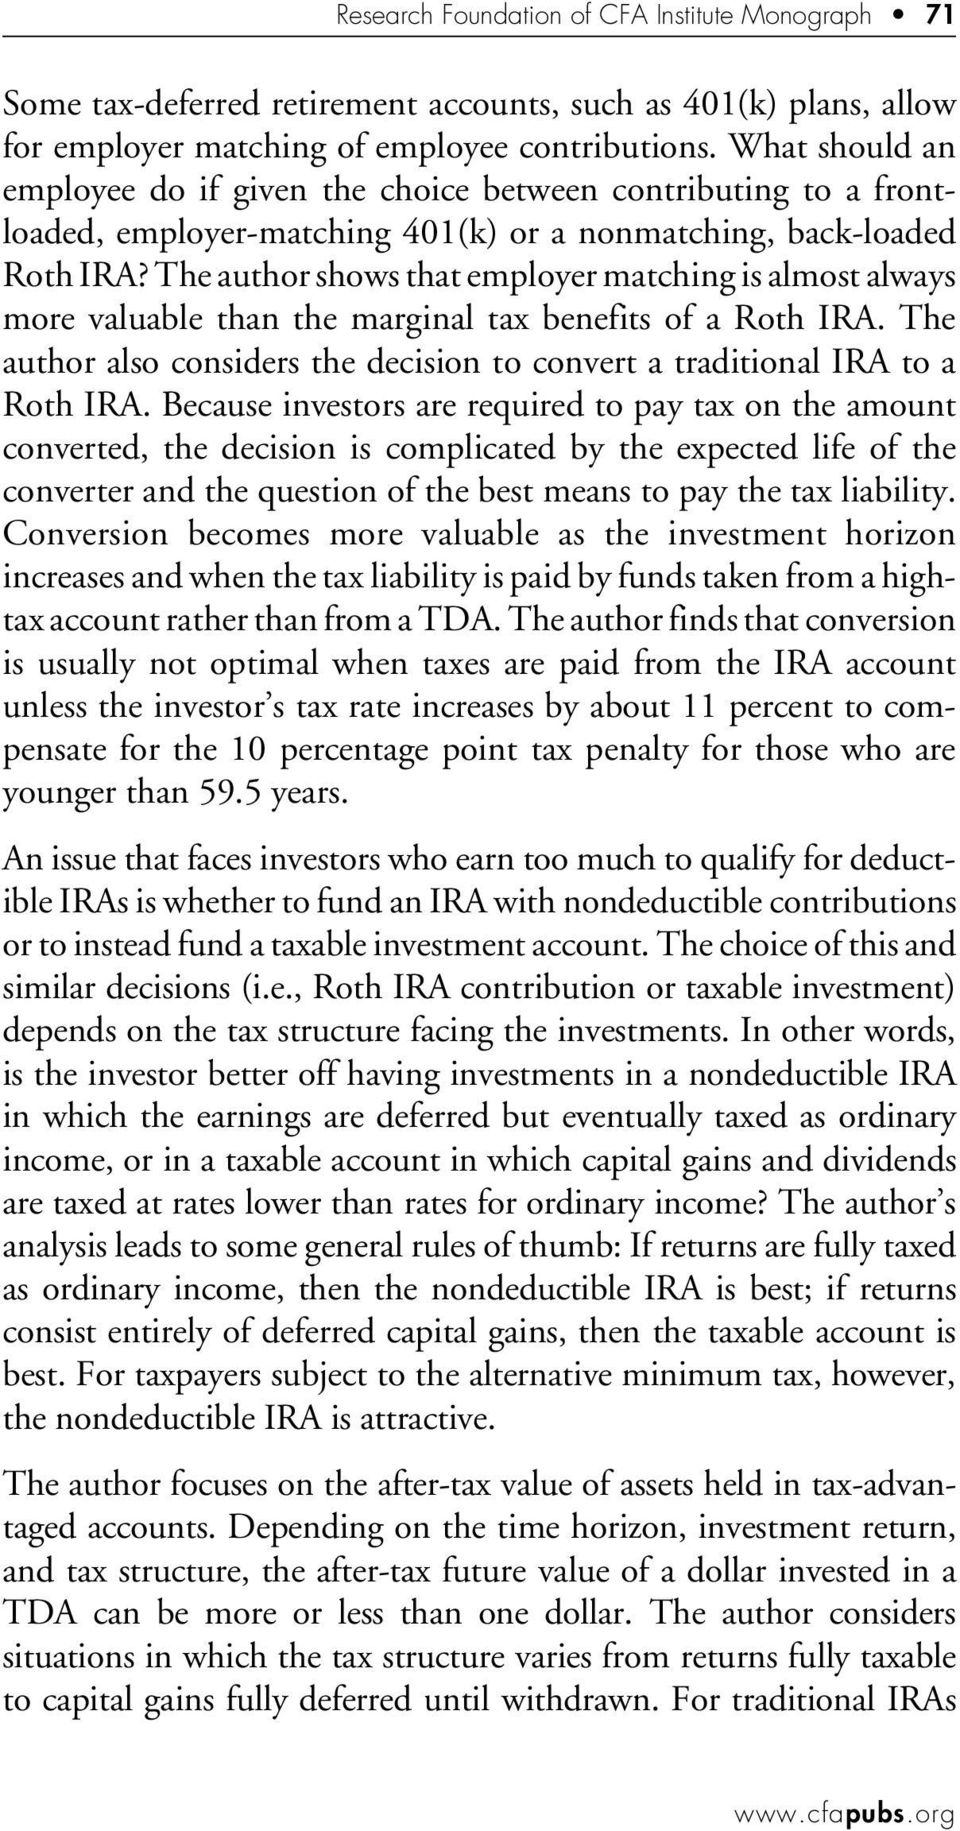 The author shows that employer matching is almost always more valuable than the marginal tax benefits of a Roth IRA. The author also considers the decision to convert a traditional IRA to a Roth IRA.